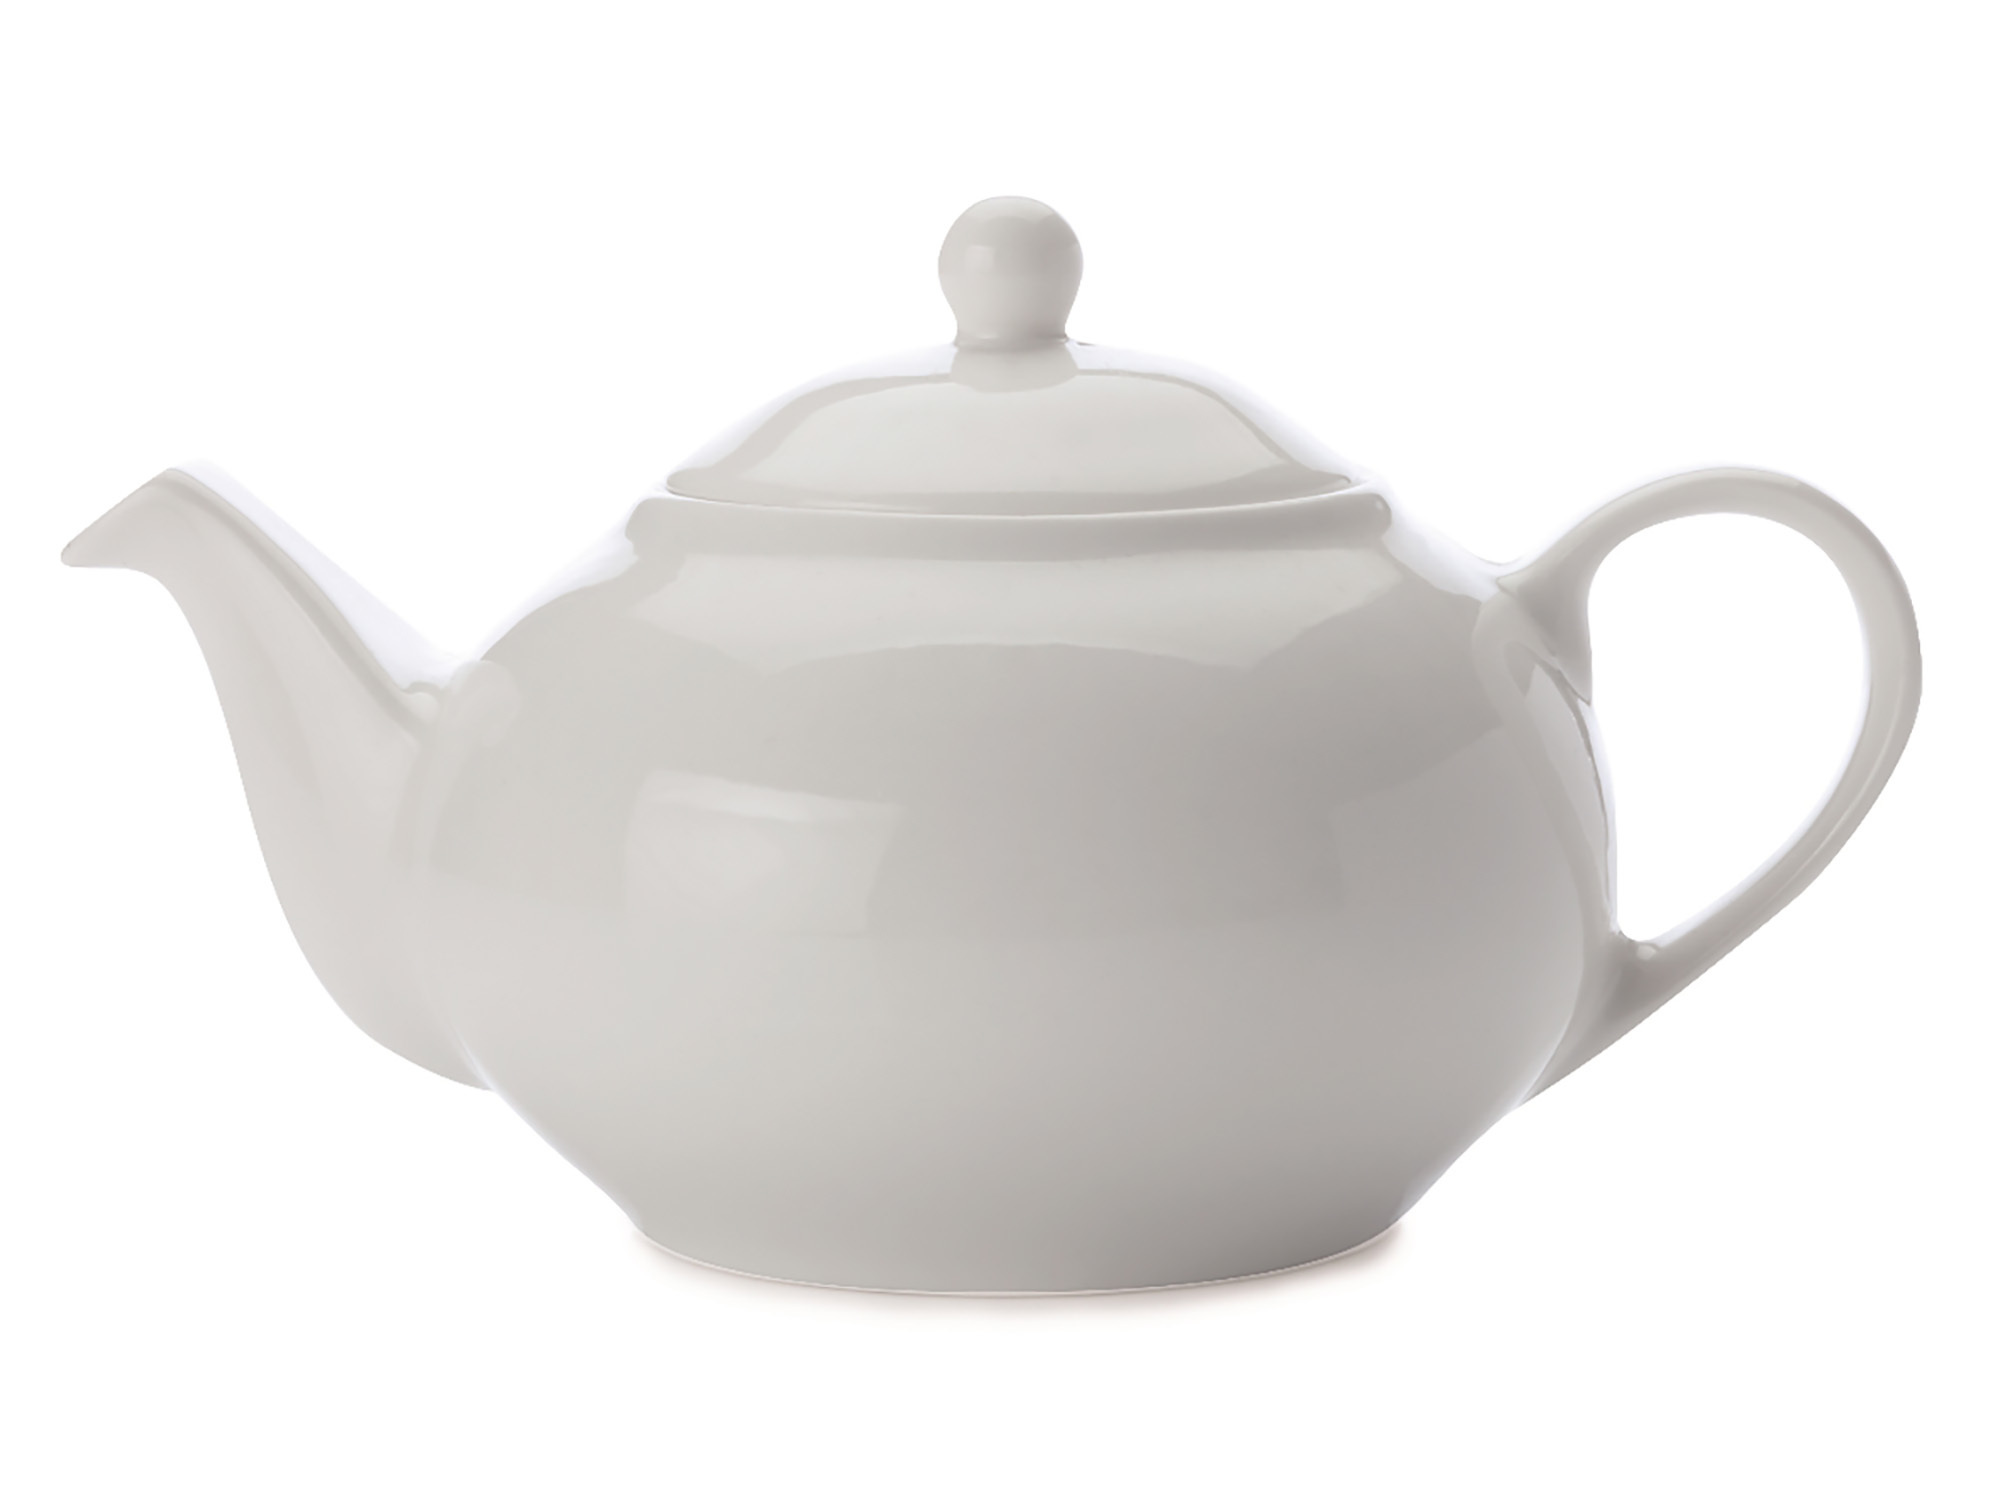 Maxwell & Williams White Basics 3 Cup Teapot Gift Boxed